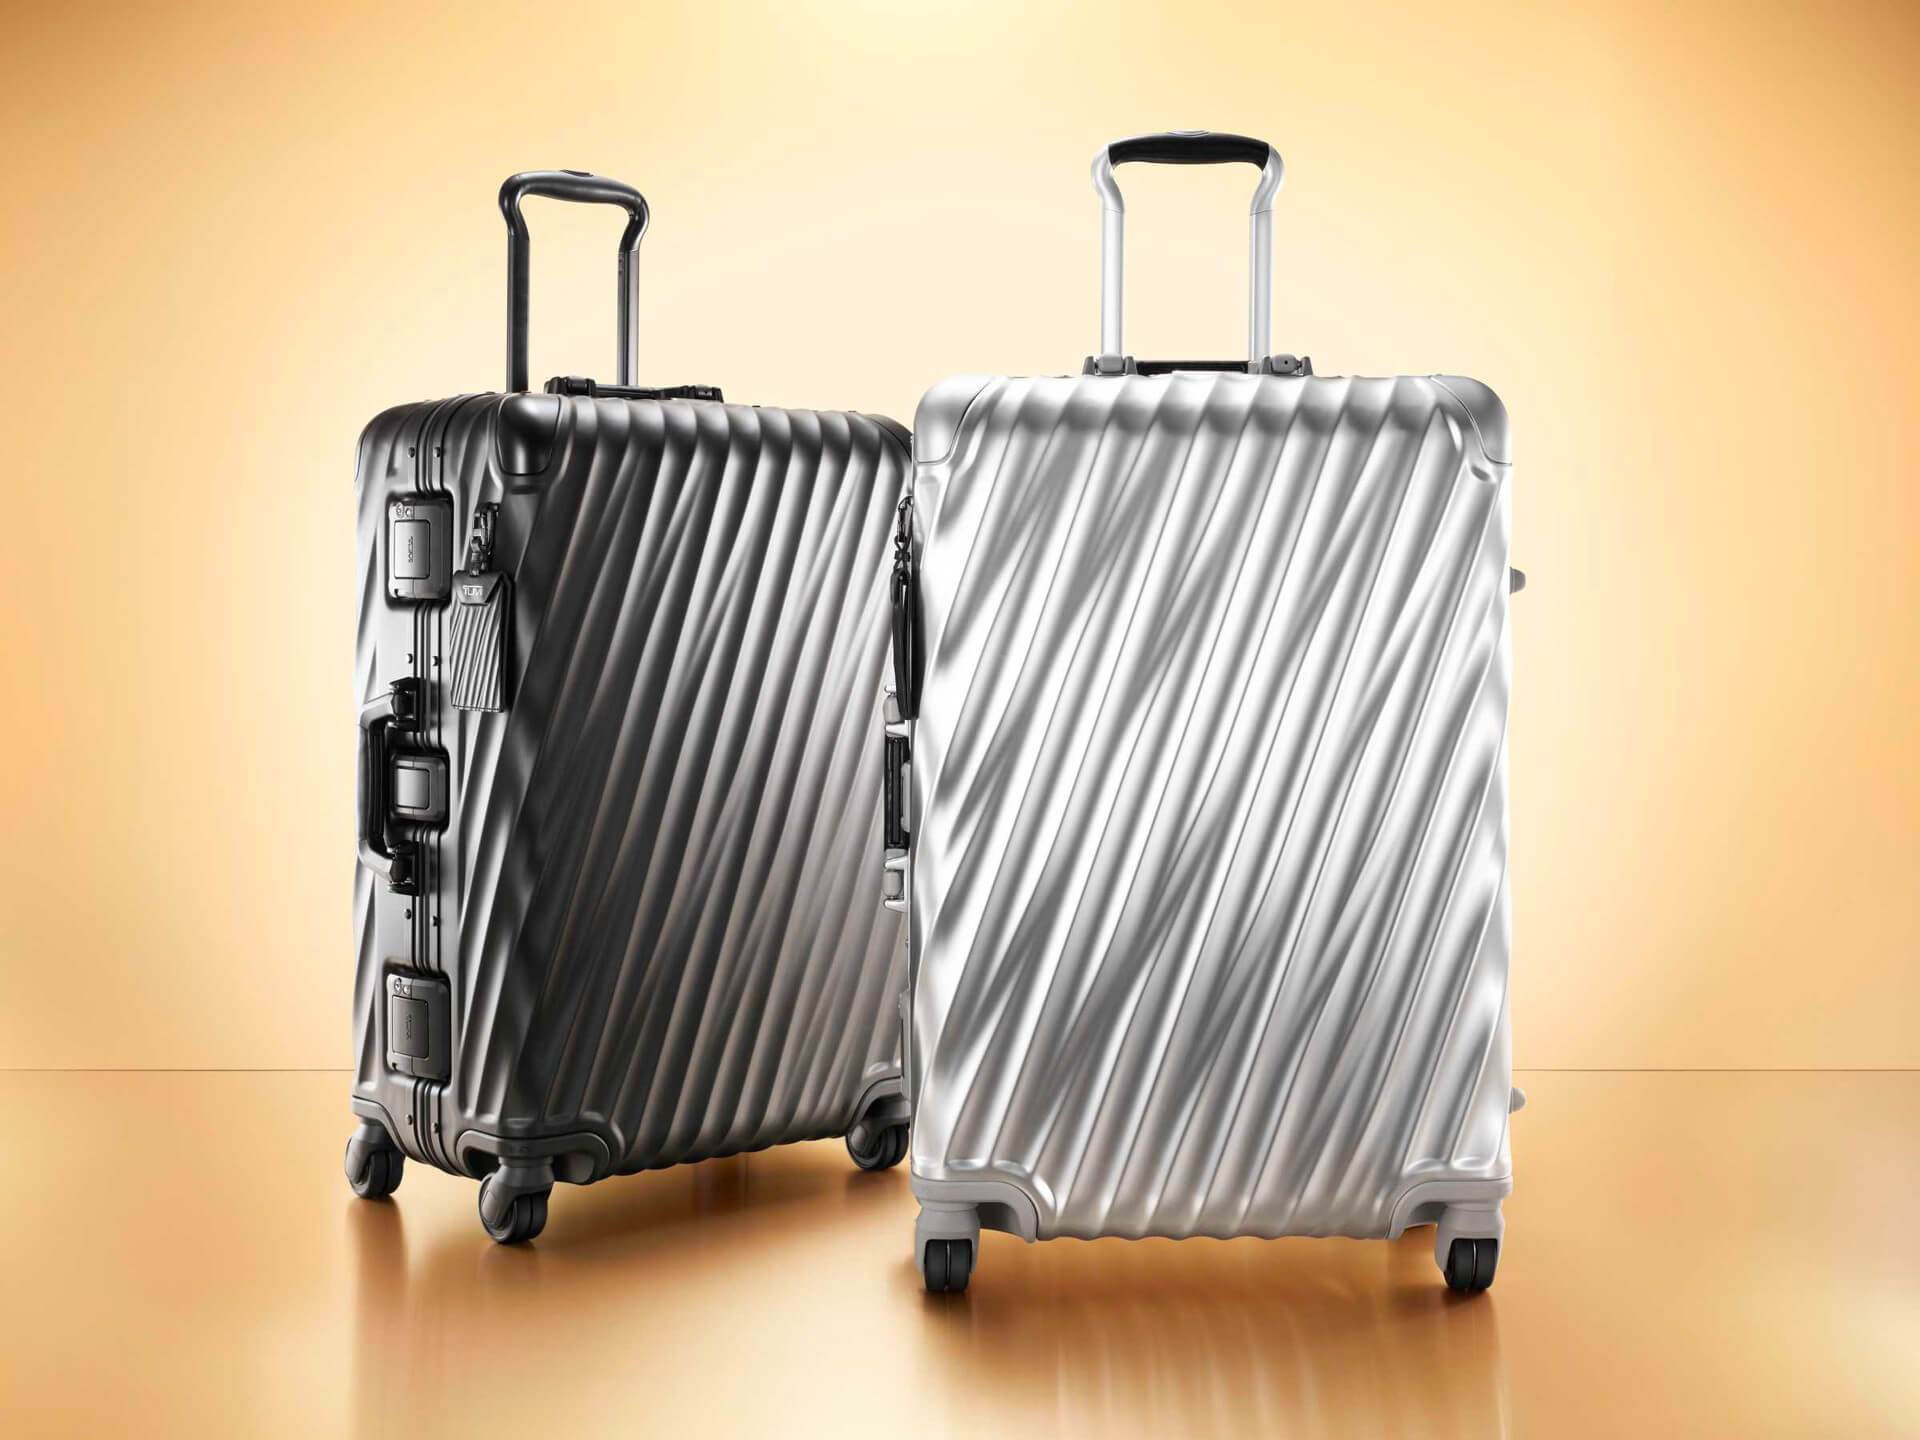 TUMI-19-Degree-Aluminum-Luggage-Collection.jpg